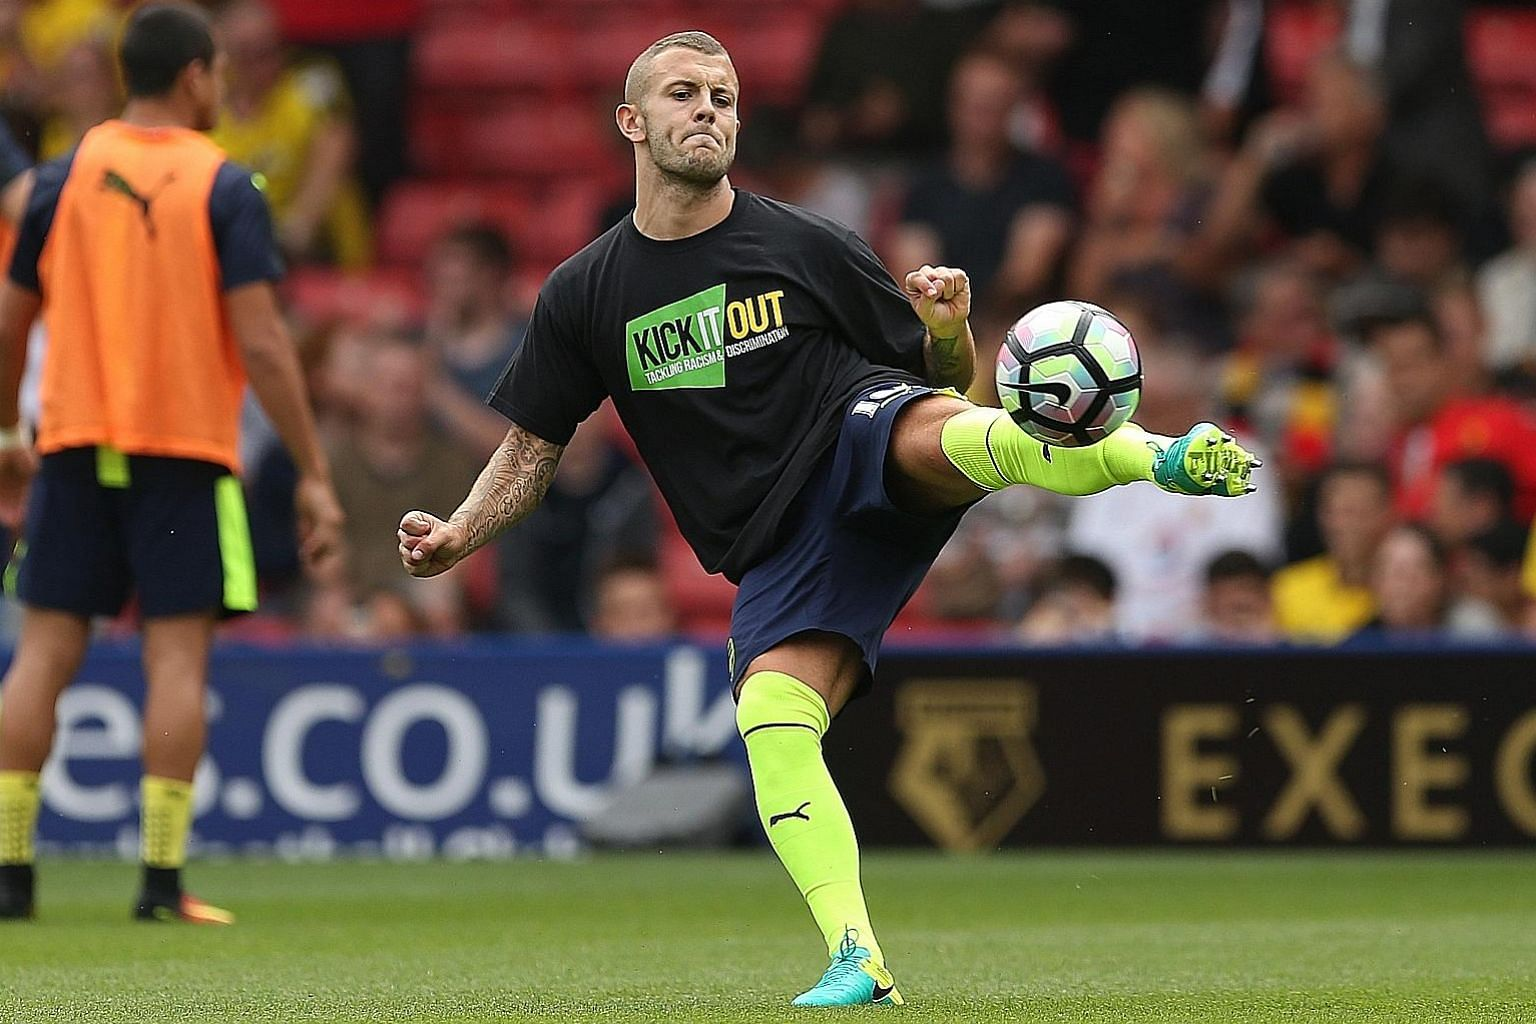 Arsenal manager Arsene Wenger believes that Jack Wilshere (left) can return to form by playing regular football elsewhere. England coach Sam Allardyce echoes his thoughts and wants to see more action from the player before he can be picked for the na